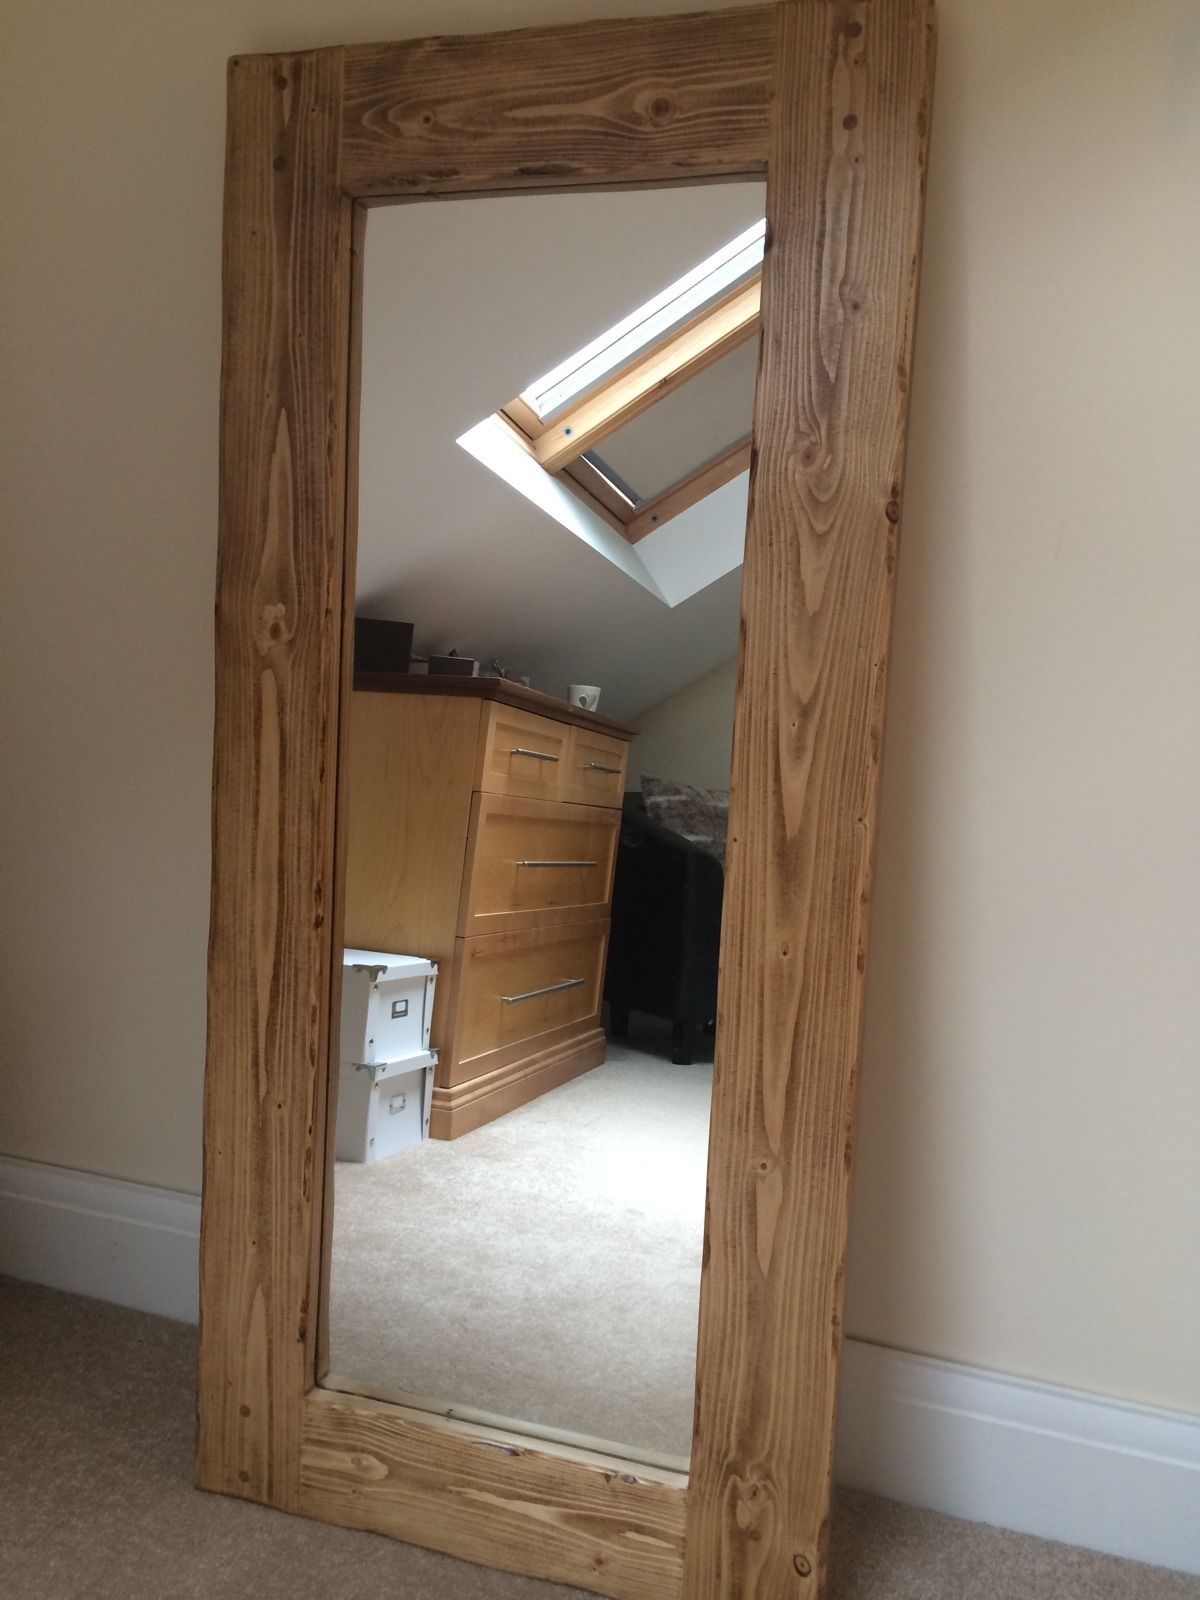 Details About *beautiful Quality Handmade Chunky Rustic Full Regarding Handcrafted Farmhouse Full Length Mirrors (View 7 of 30)